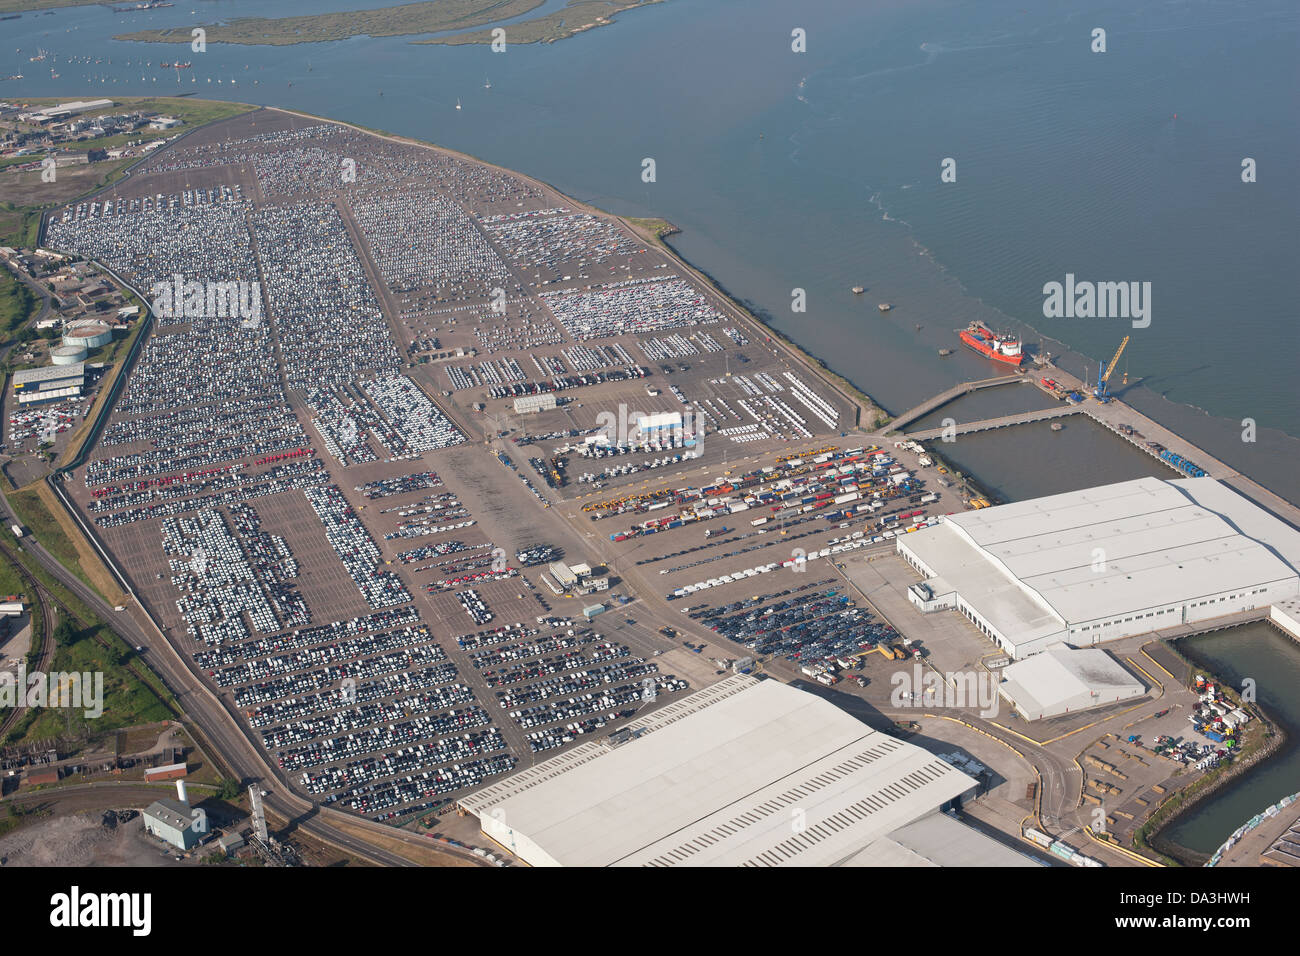 VAST CAR DEPOSITORY (aerial view). Thames Estuary, Sheerness, Isle of Sheppey, Kent, England, Great Britain, United - Stock Image